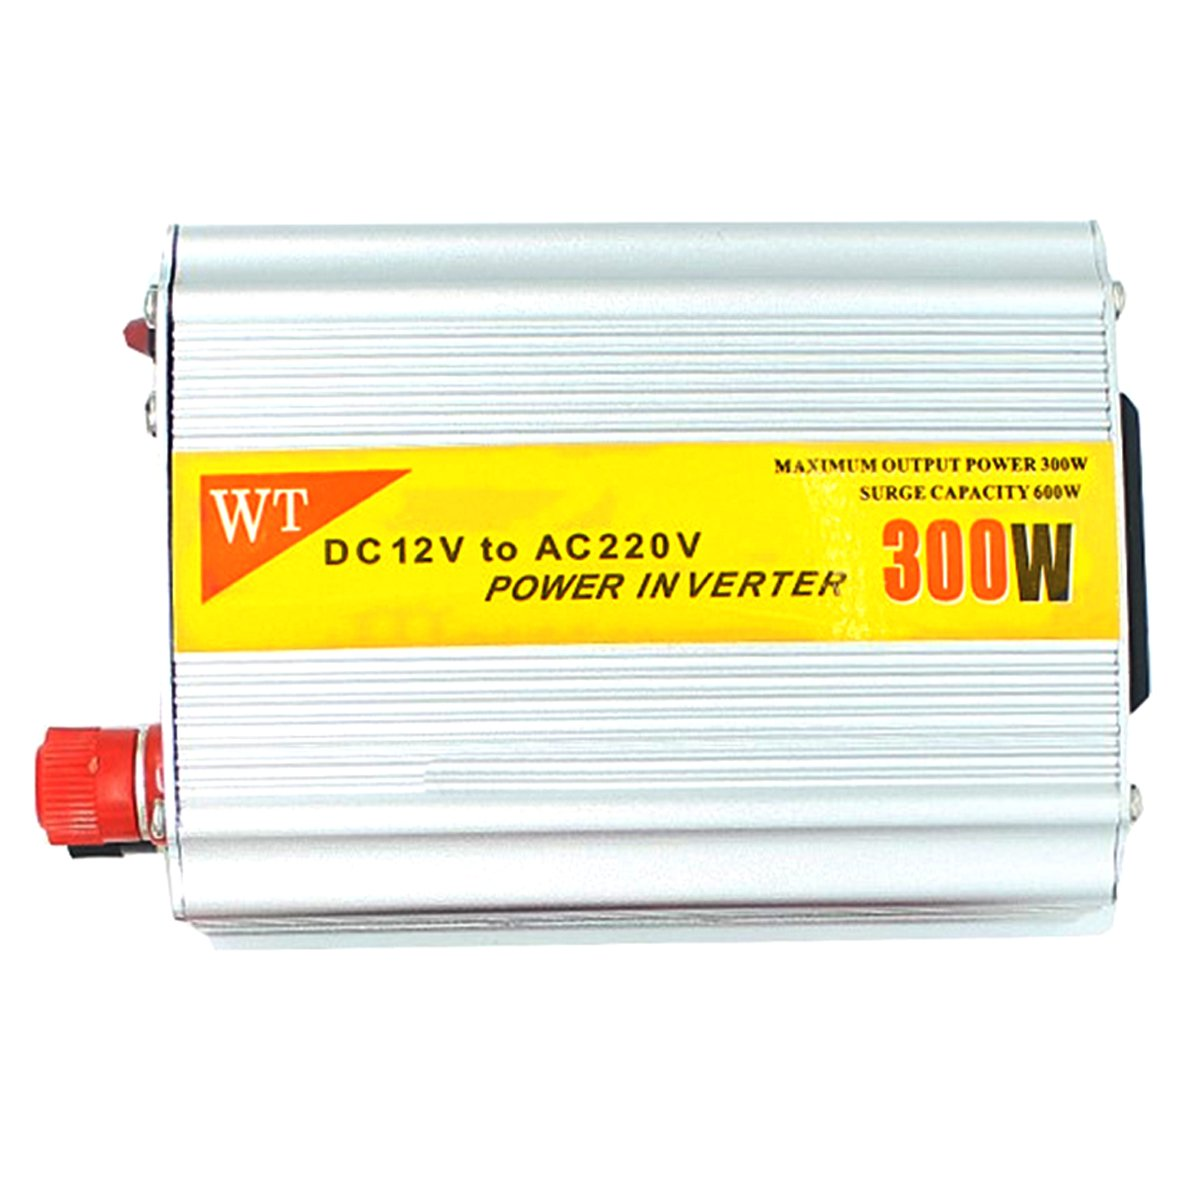 IDS Home 300W 12V DC to 220V AC Power Inverter with Connection Kits Aluminum Alloy?